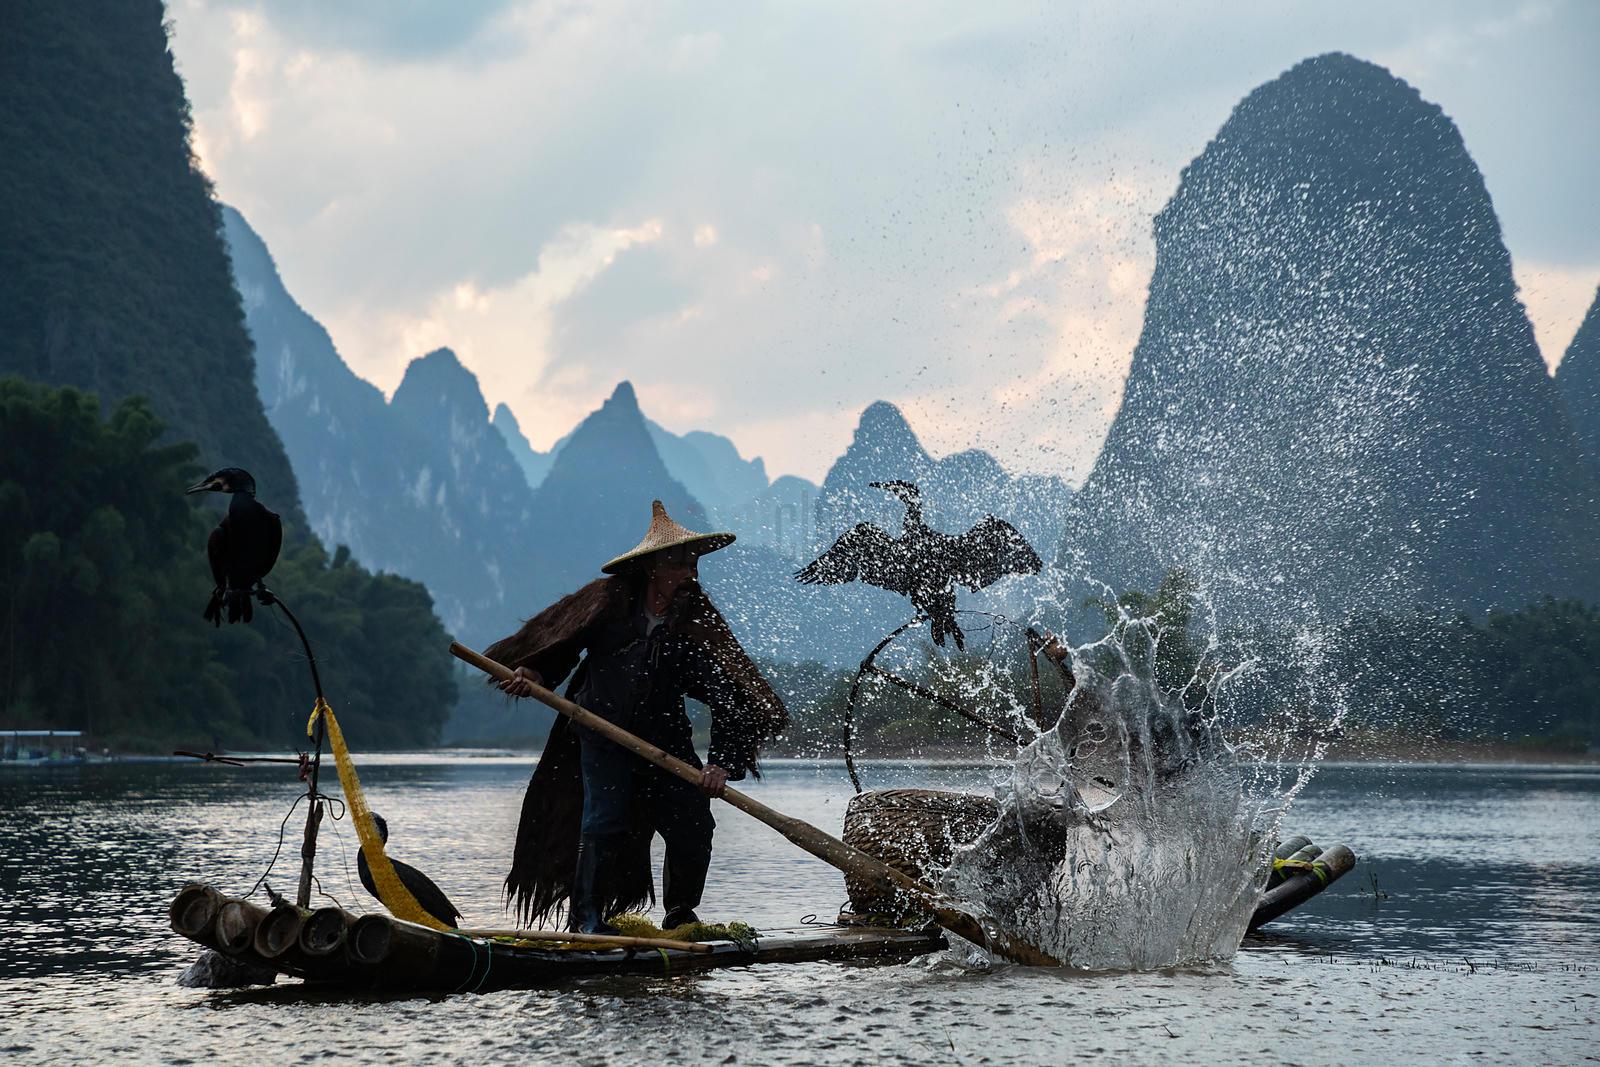 Cormorant Fisherman Beating the Water with a Paddle